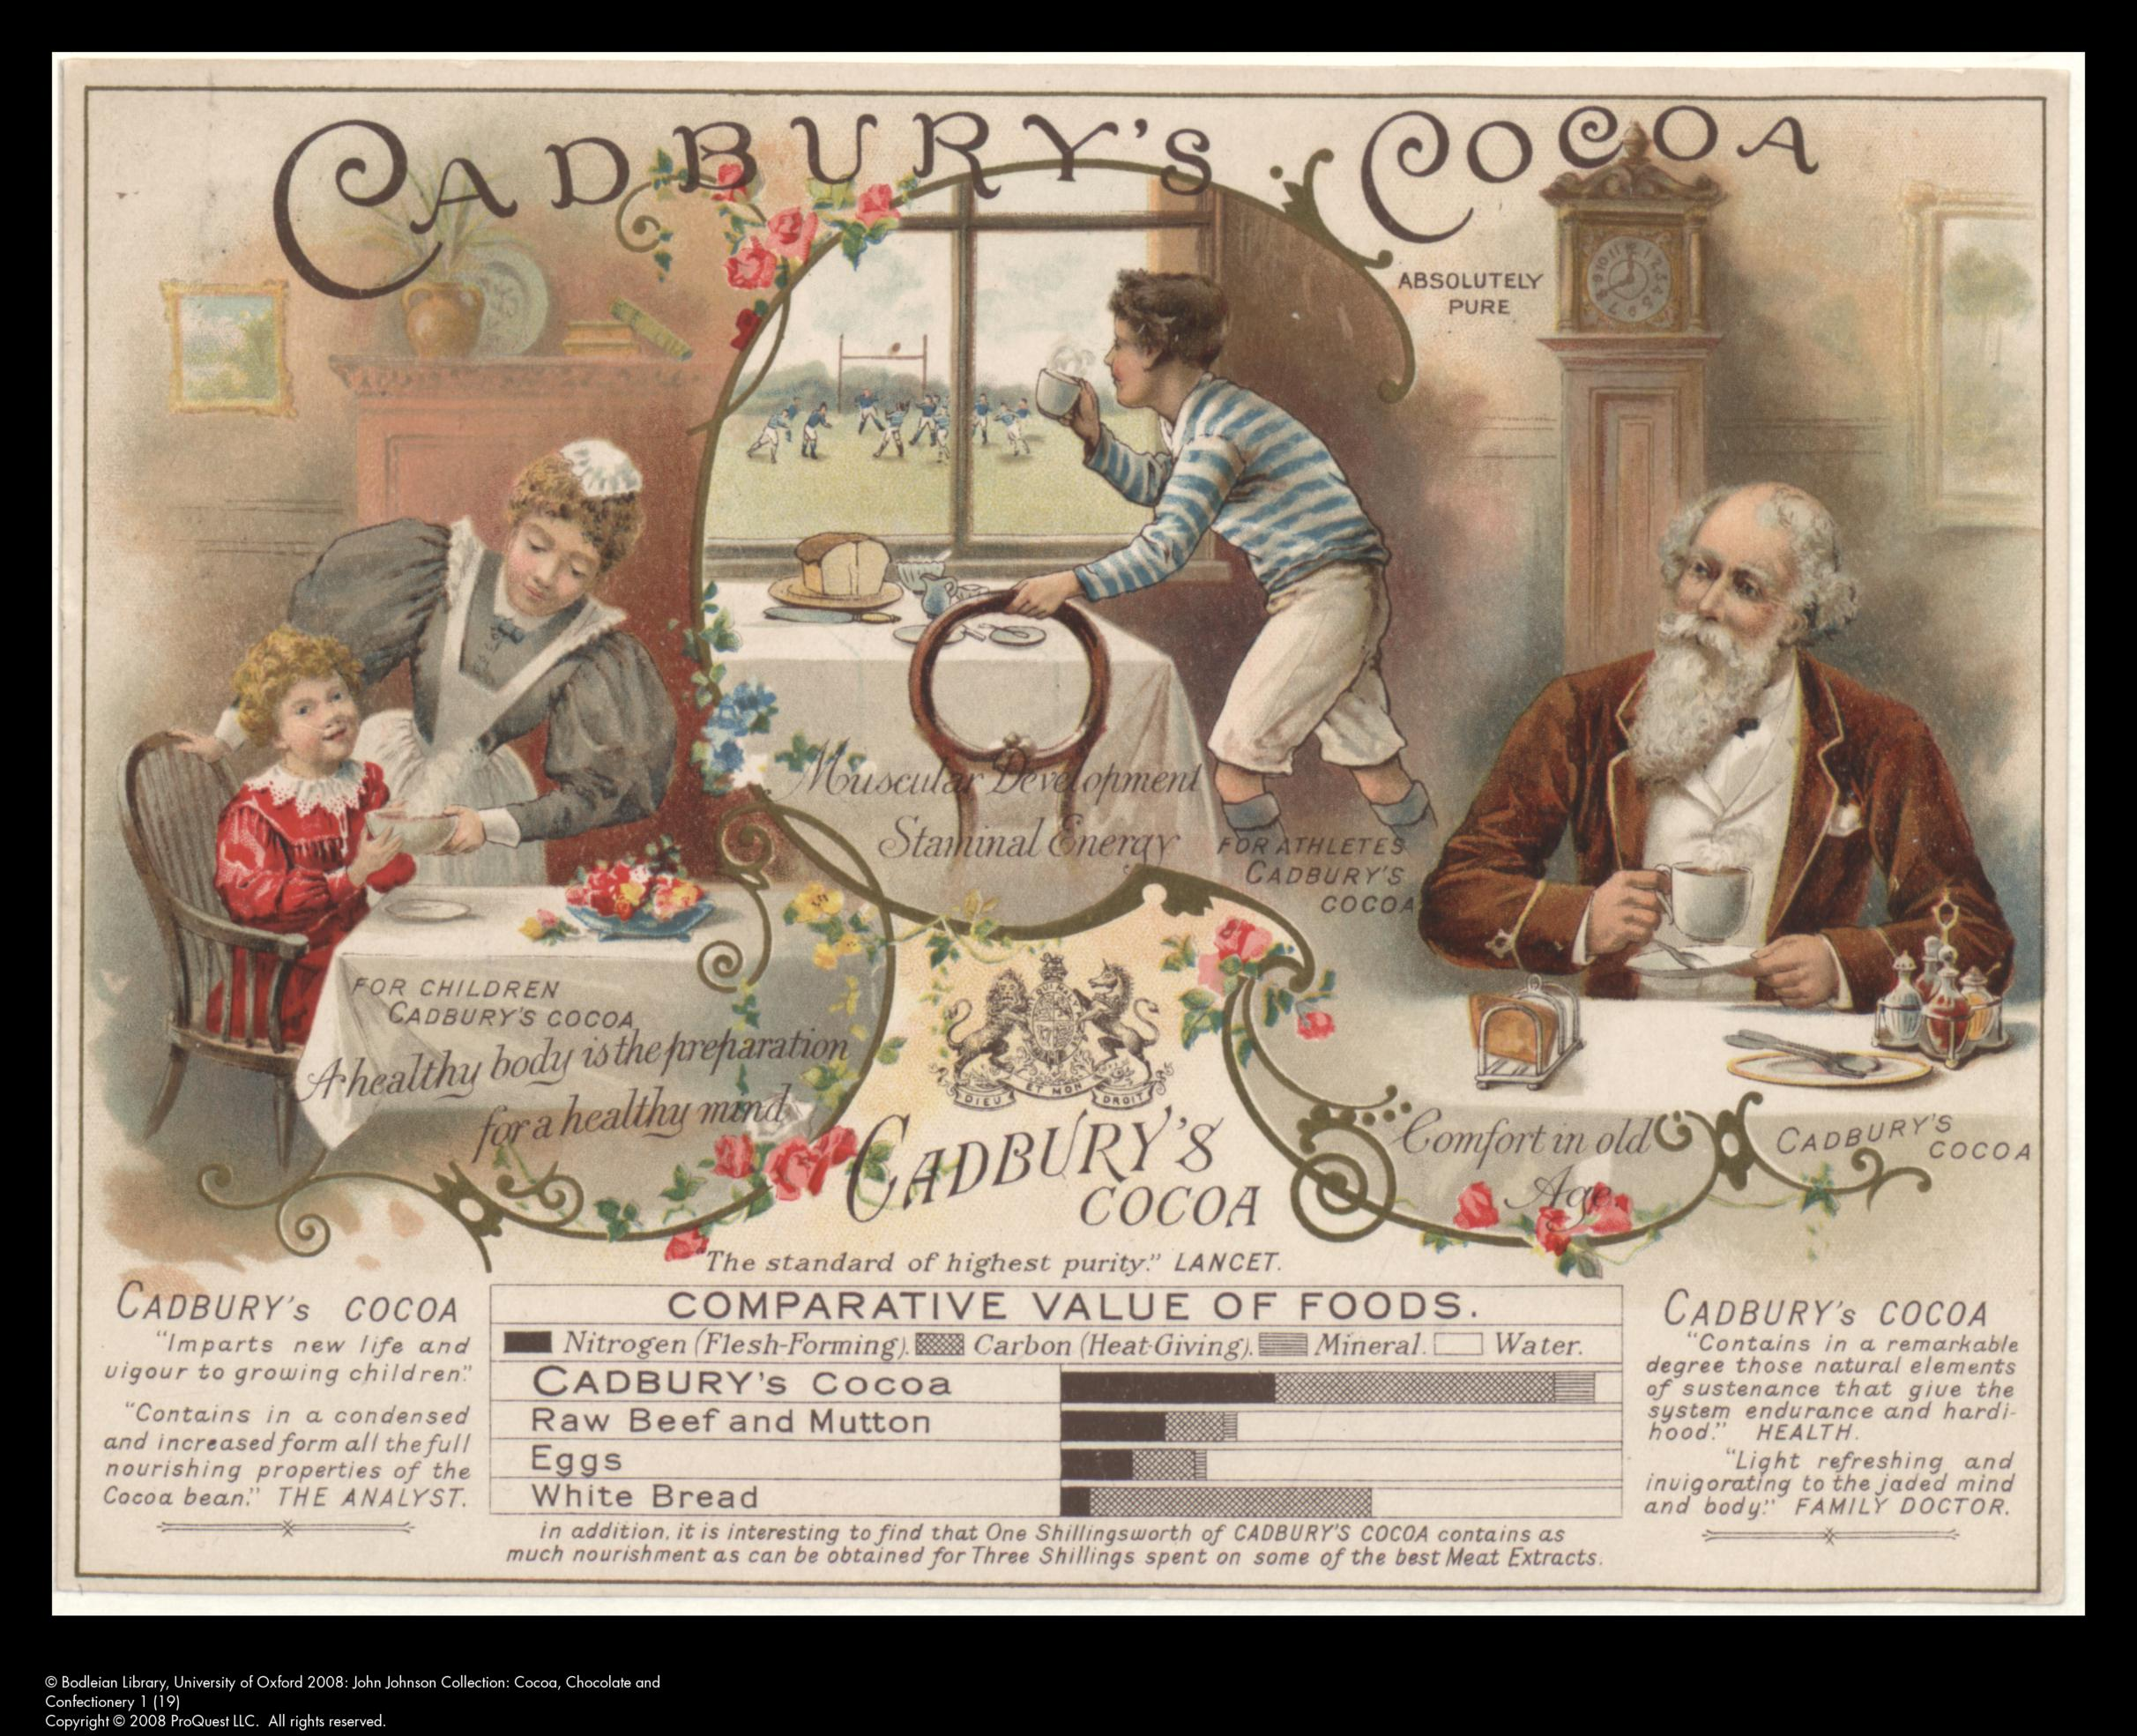 Cadbury's Cocoa advertisement with nutritional table